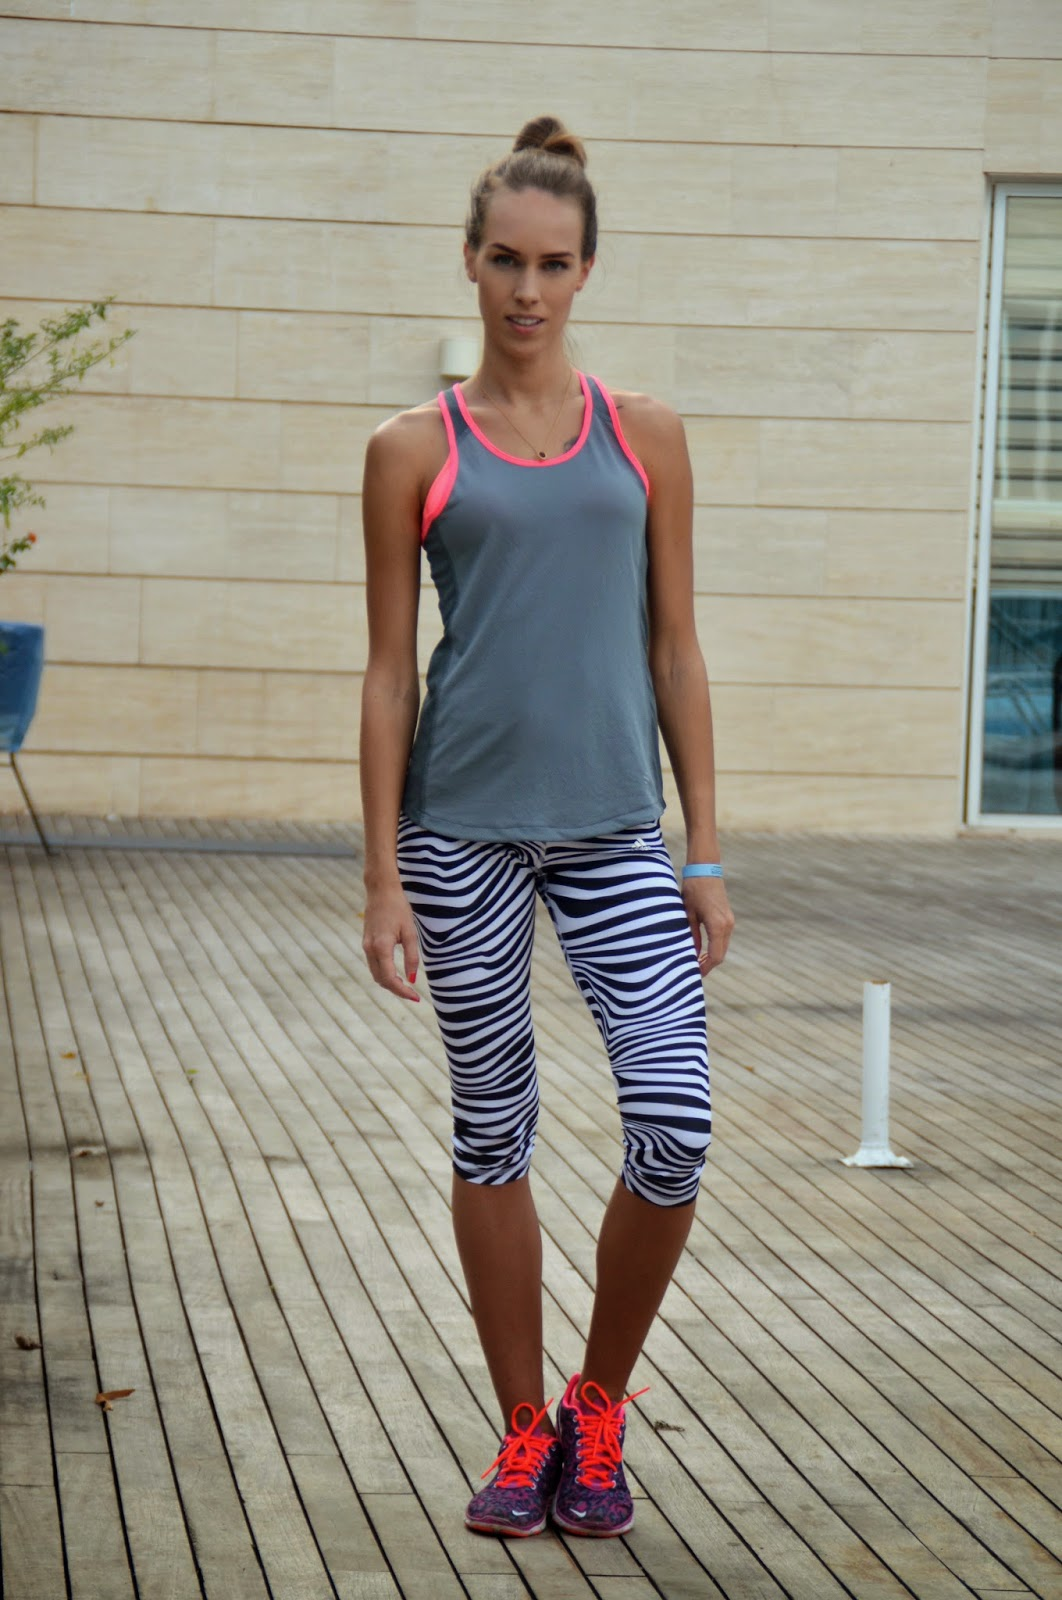 adidas-zebra-workout-pants-hm-sports-top-bra